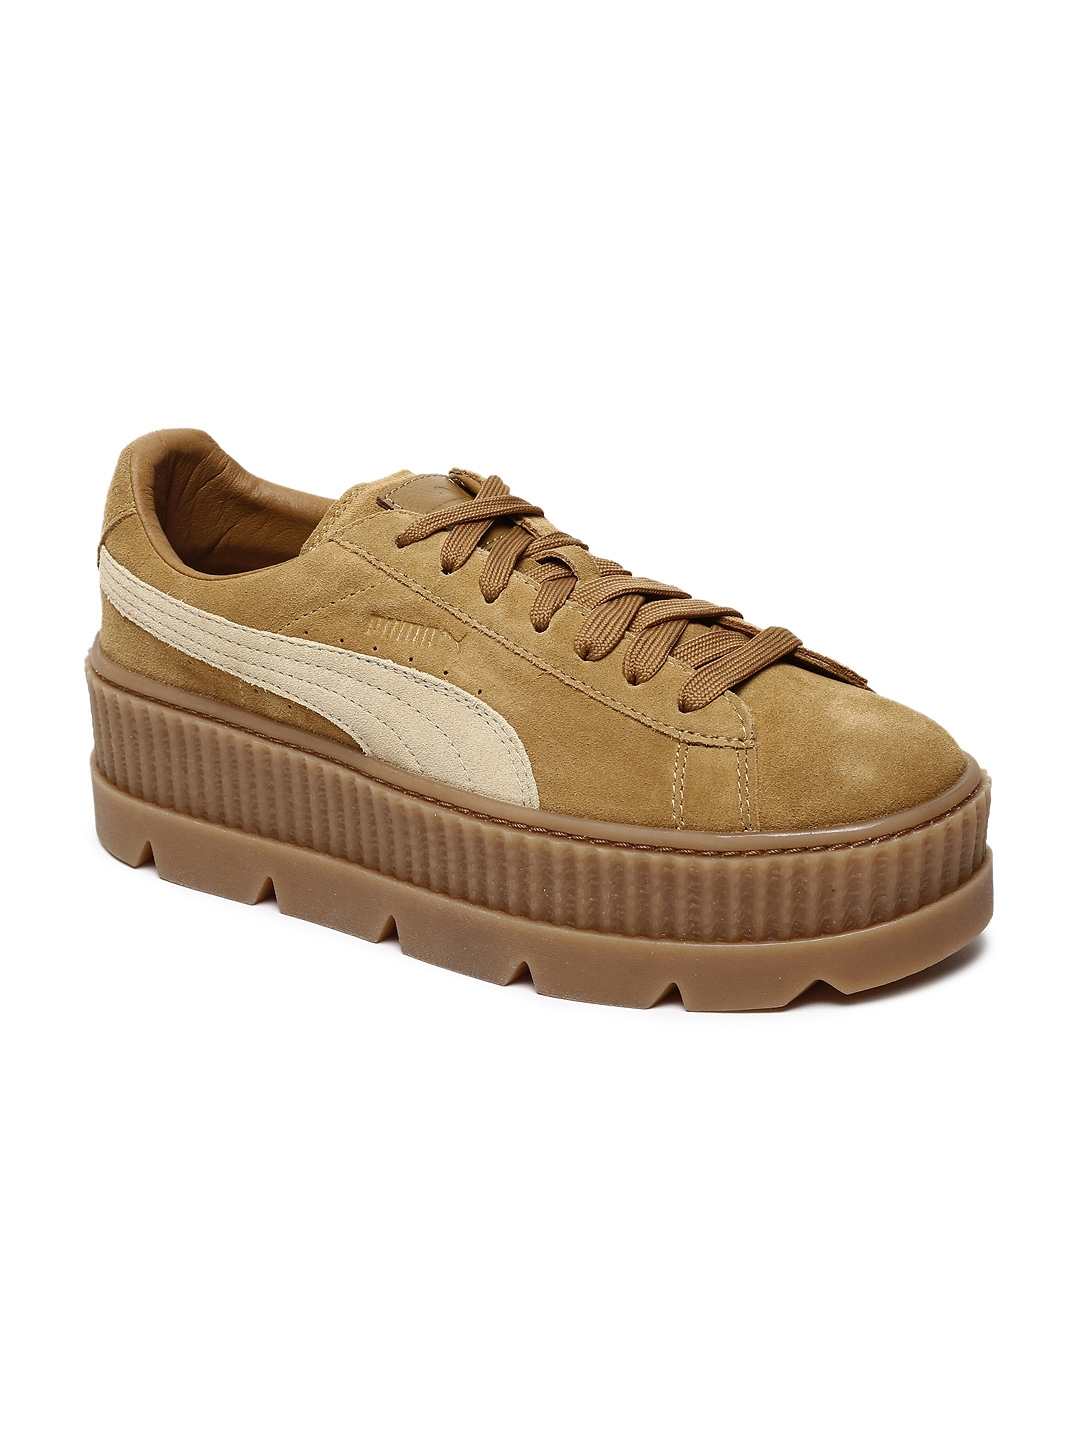 new style 4b5dc cd3b9 Buy Puma Women Tan Brown Cleated Creeper Suede Sneakers ...